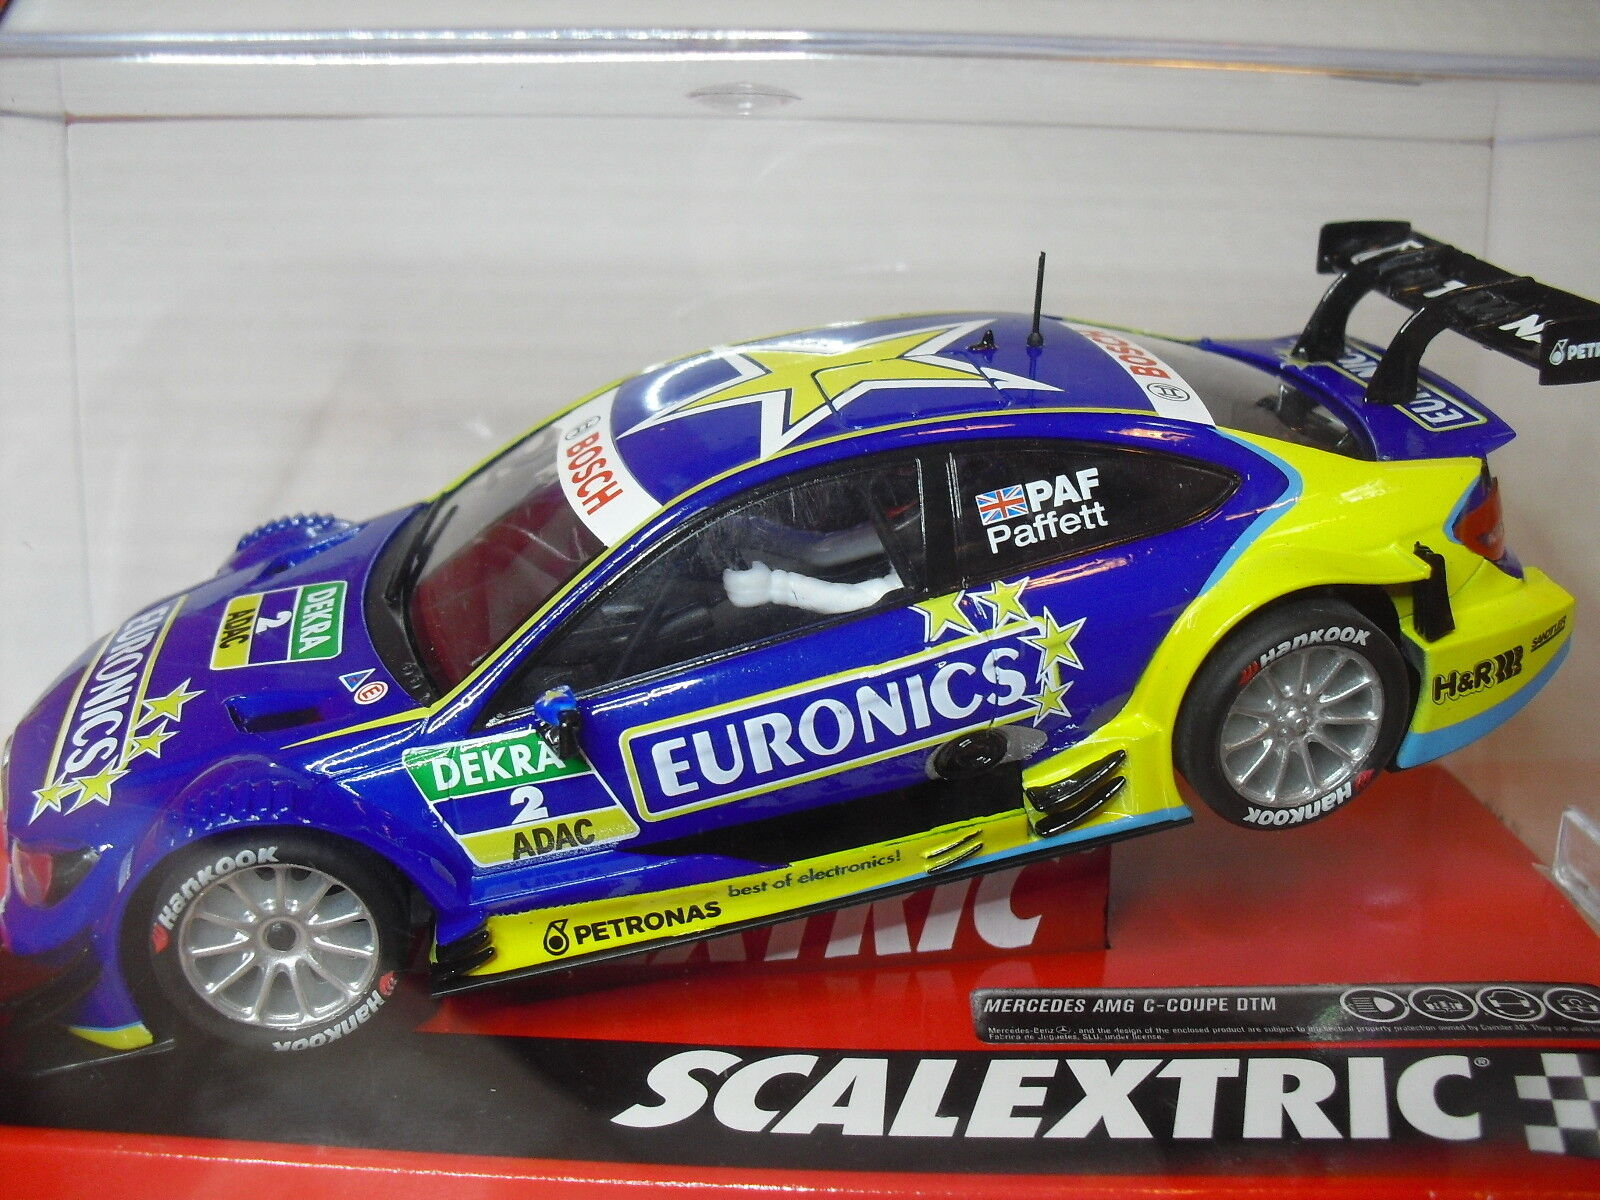 NEWNESS SCALEXTRIC A10214S300 Mercedes C - Coupe   Pafett  AMG DTM 1 32 new